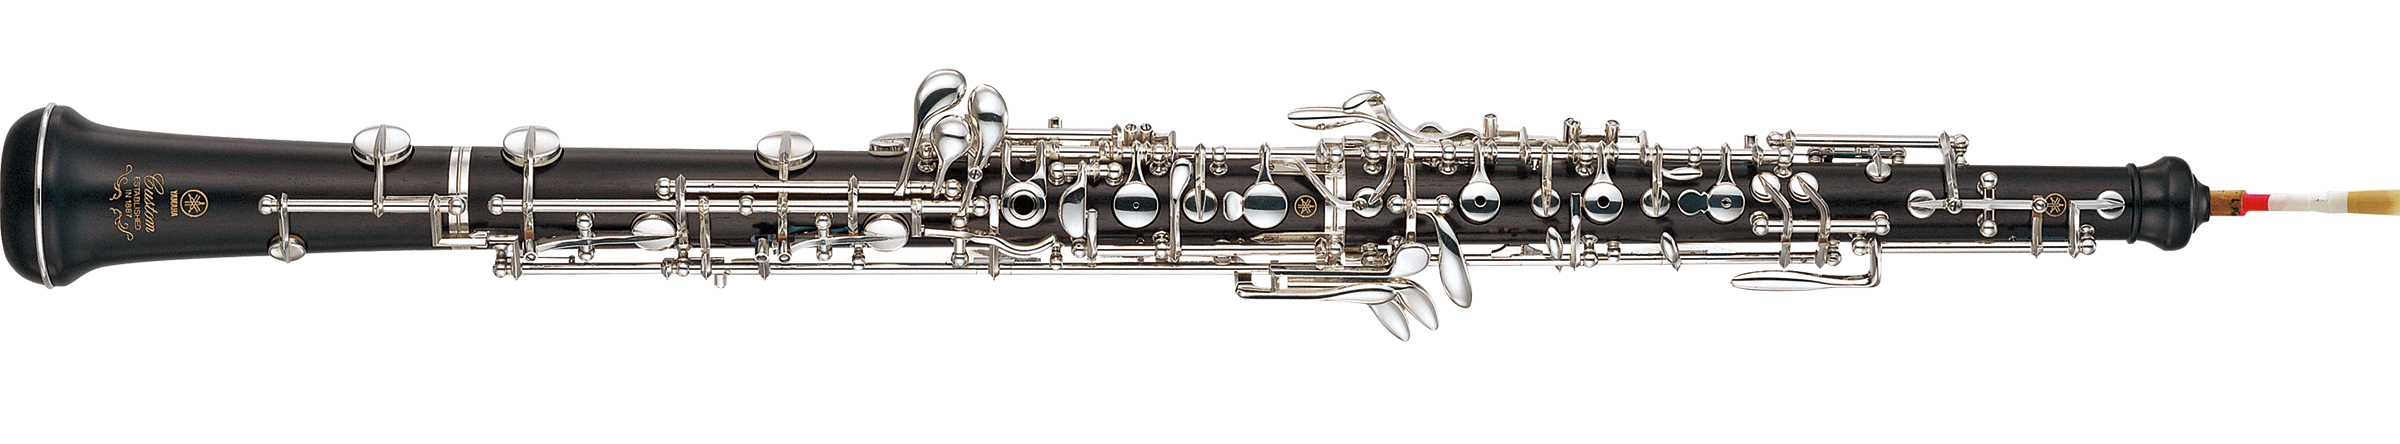 https://www.yamaha.com/ja/musical_instrument_guide/common/images/oboe/parts_viewer01.jpg